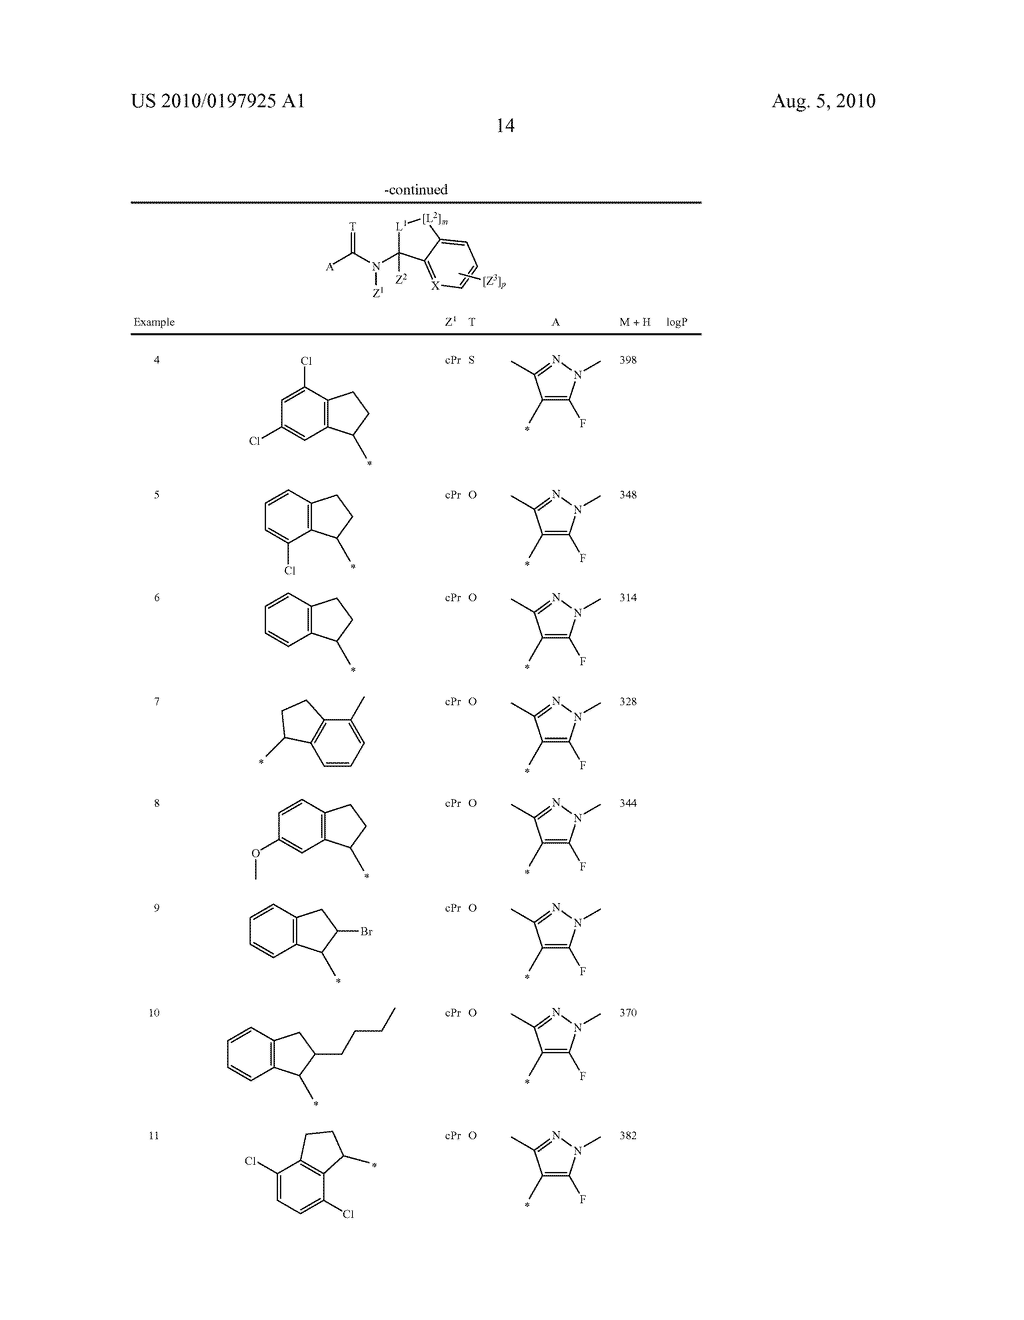 FUNGICIDE N-CYCLOALKYL-N-BICYCLIC-CARBOXAMIDE DERIVATIVES - diagram, schematic, and image 15